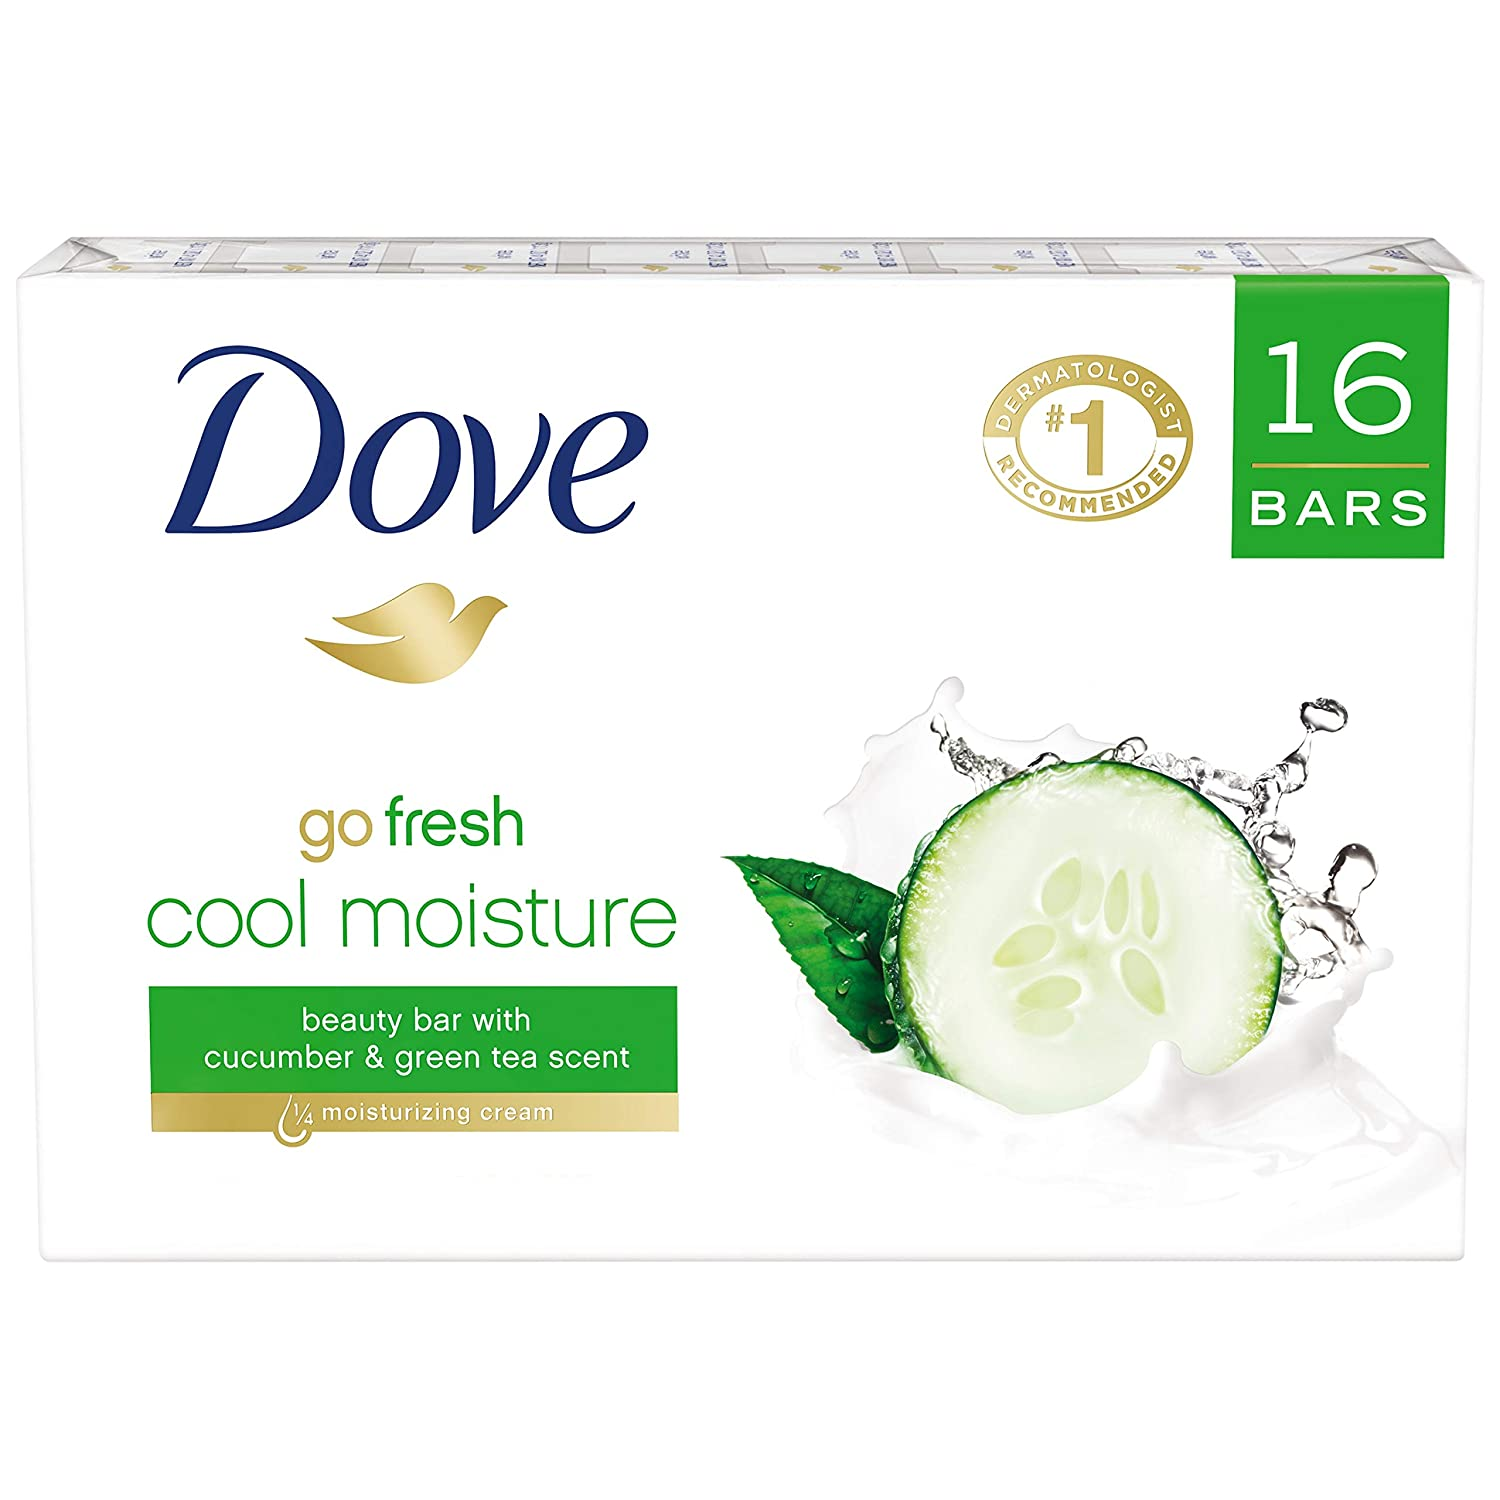 Dove  More Moisturizing than Bar Soap, Cucumber and Green Tea Beauty Bar, 4 Ounce, 16 Count (Pack of 1)